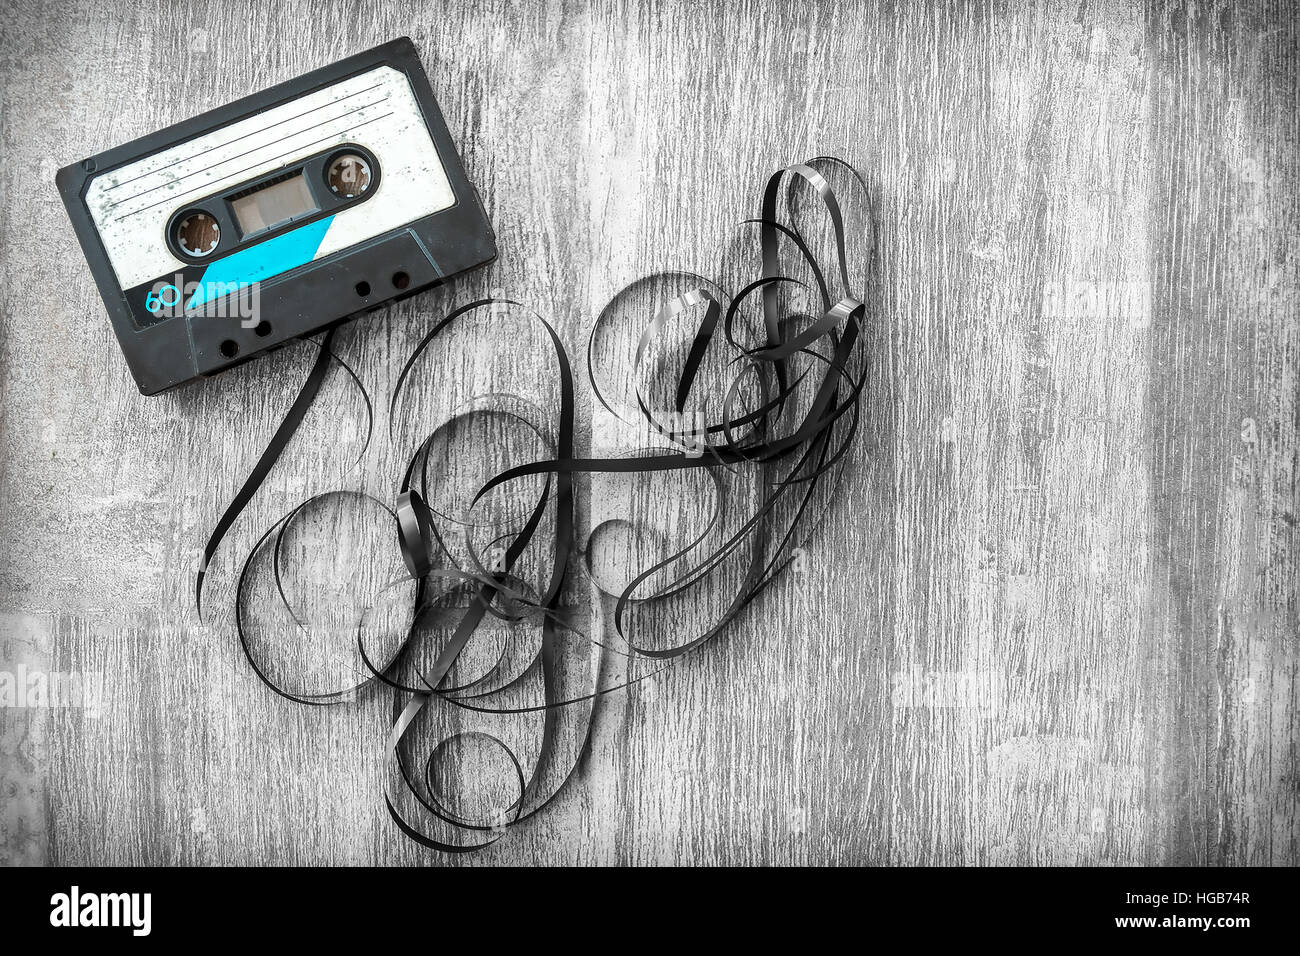 audio tape rolled out background wood vintage unroll compact cassette playlist musicassette - Stock Image